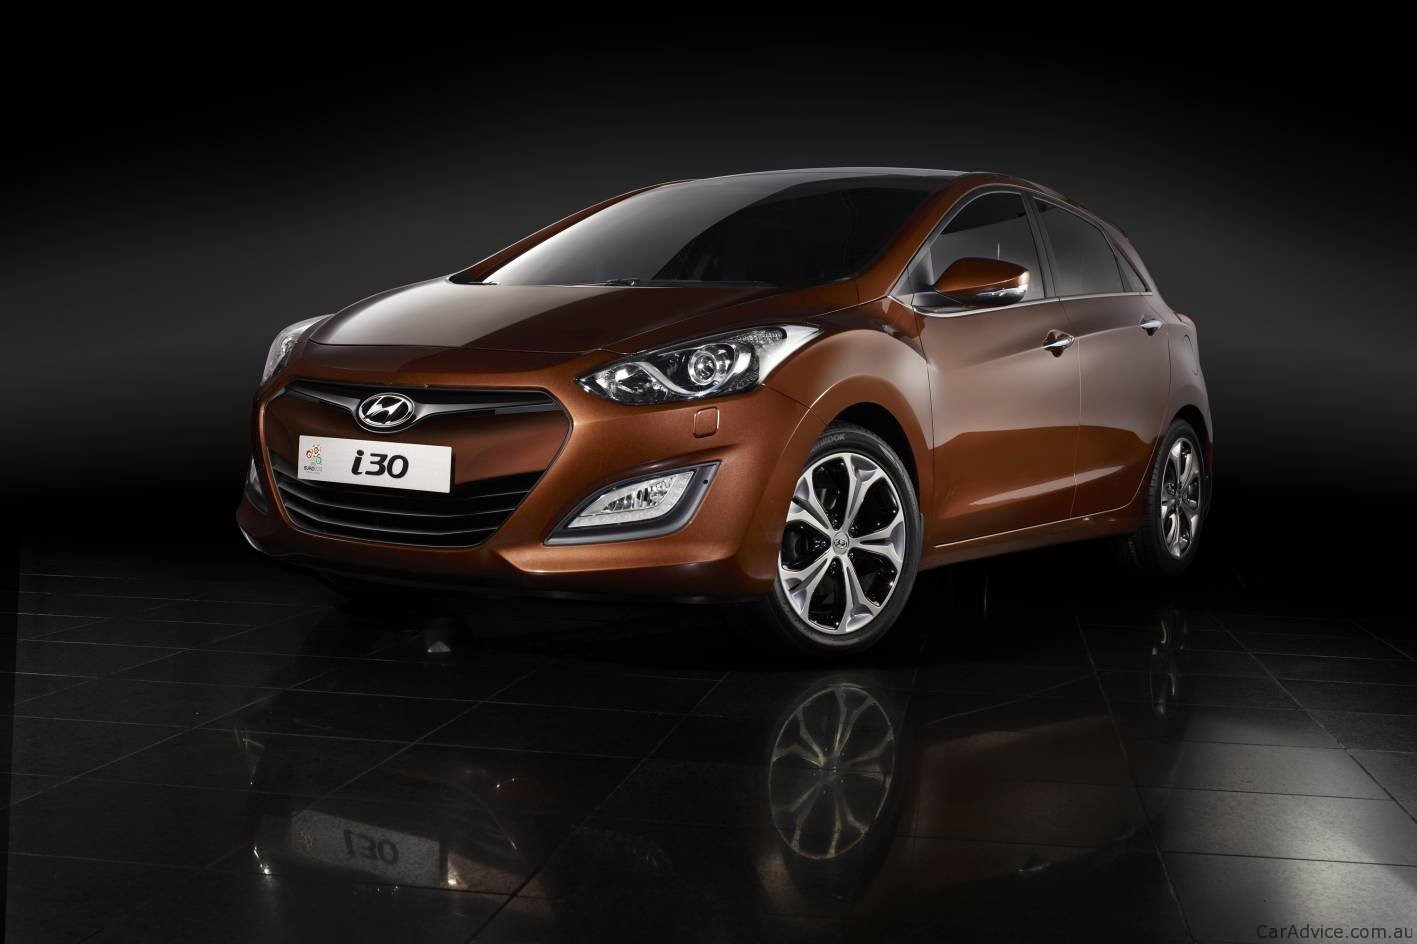 2012 hyundai i30 revealed at frankfurt motor show photos 1 of 14. Black Bedroom Furniture Sets. Home Design Ideas